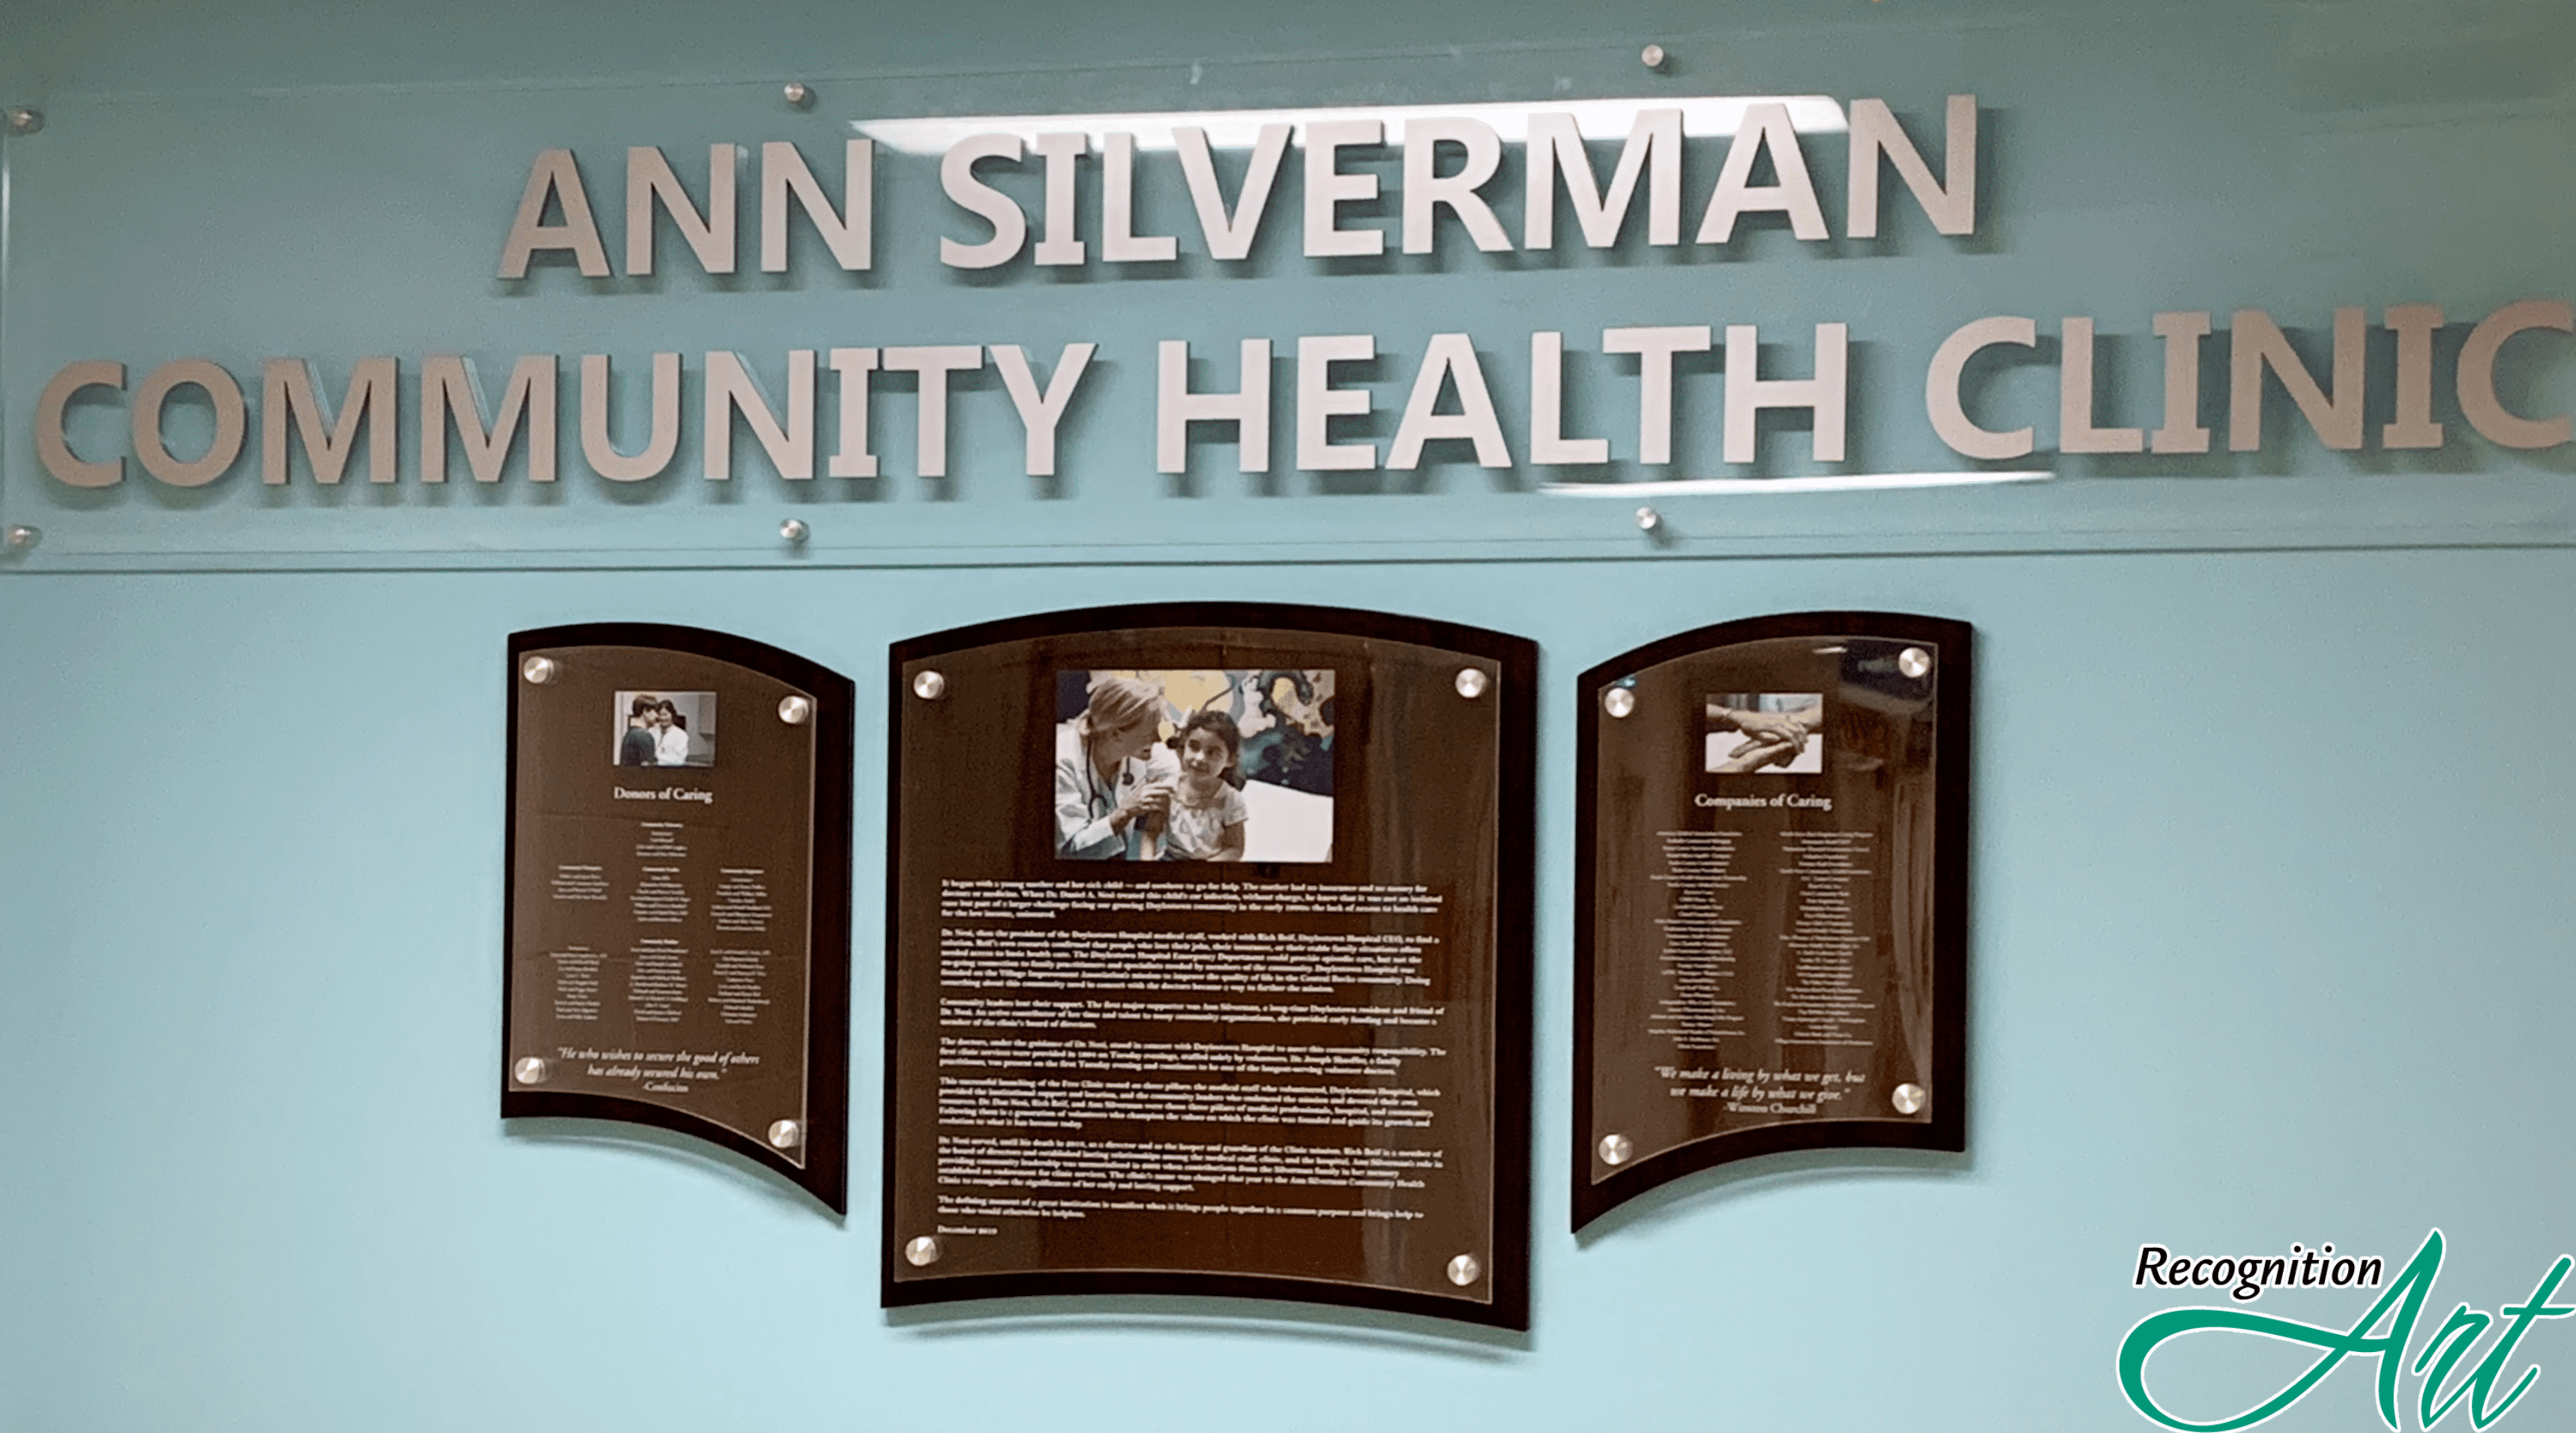 Acrylic header with metal letters that says Ann Silverman Community Health Clinic with a wood backer display with acrylic held by standoffs that display donors